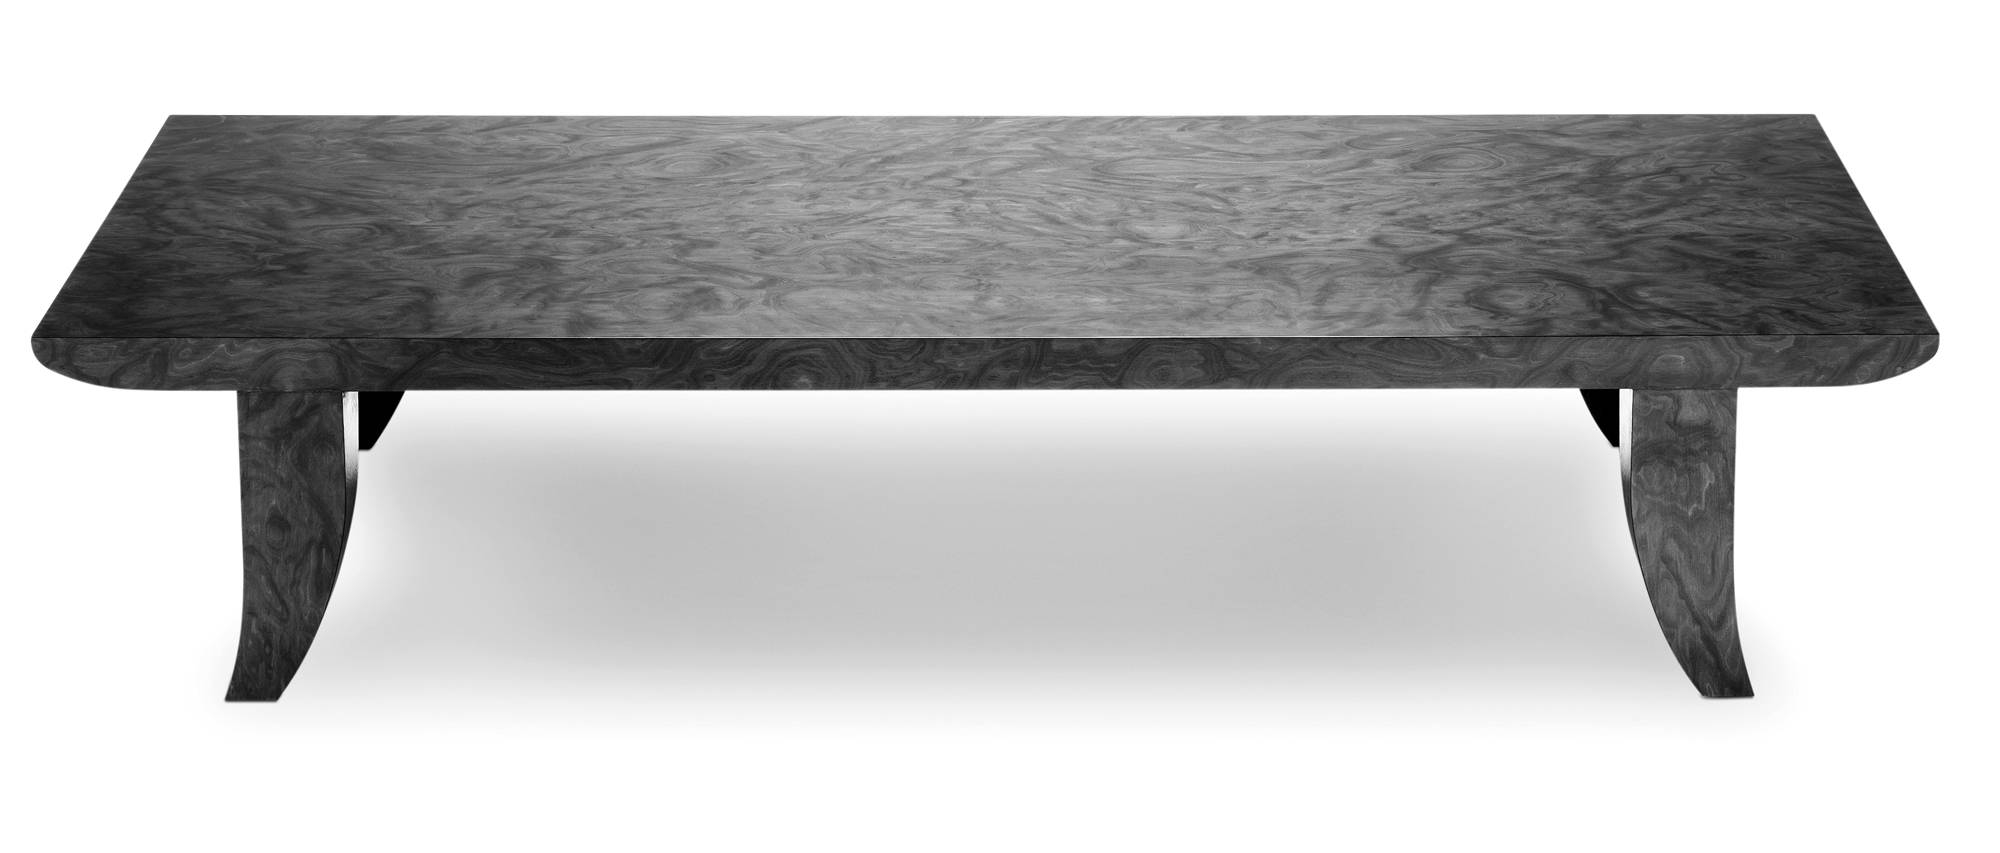 Marie's Corner - Marie's Corner Table-Tokyo-Coffee-Table intended for Tokyo Coffee Tables (Image 11 of 30)